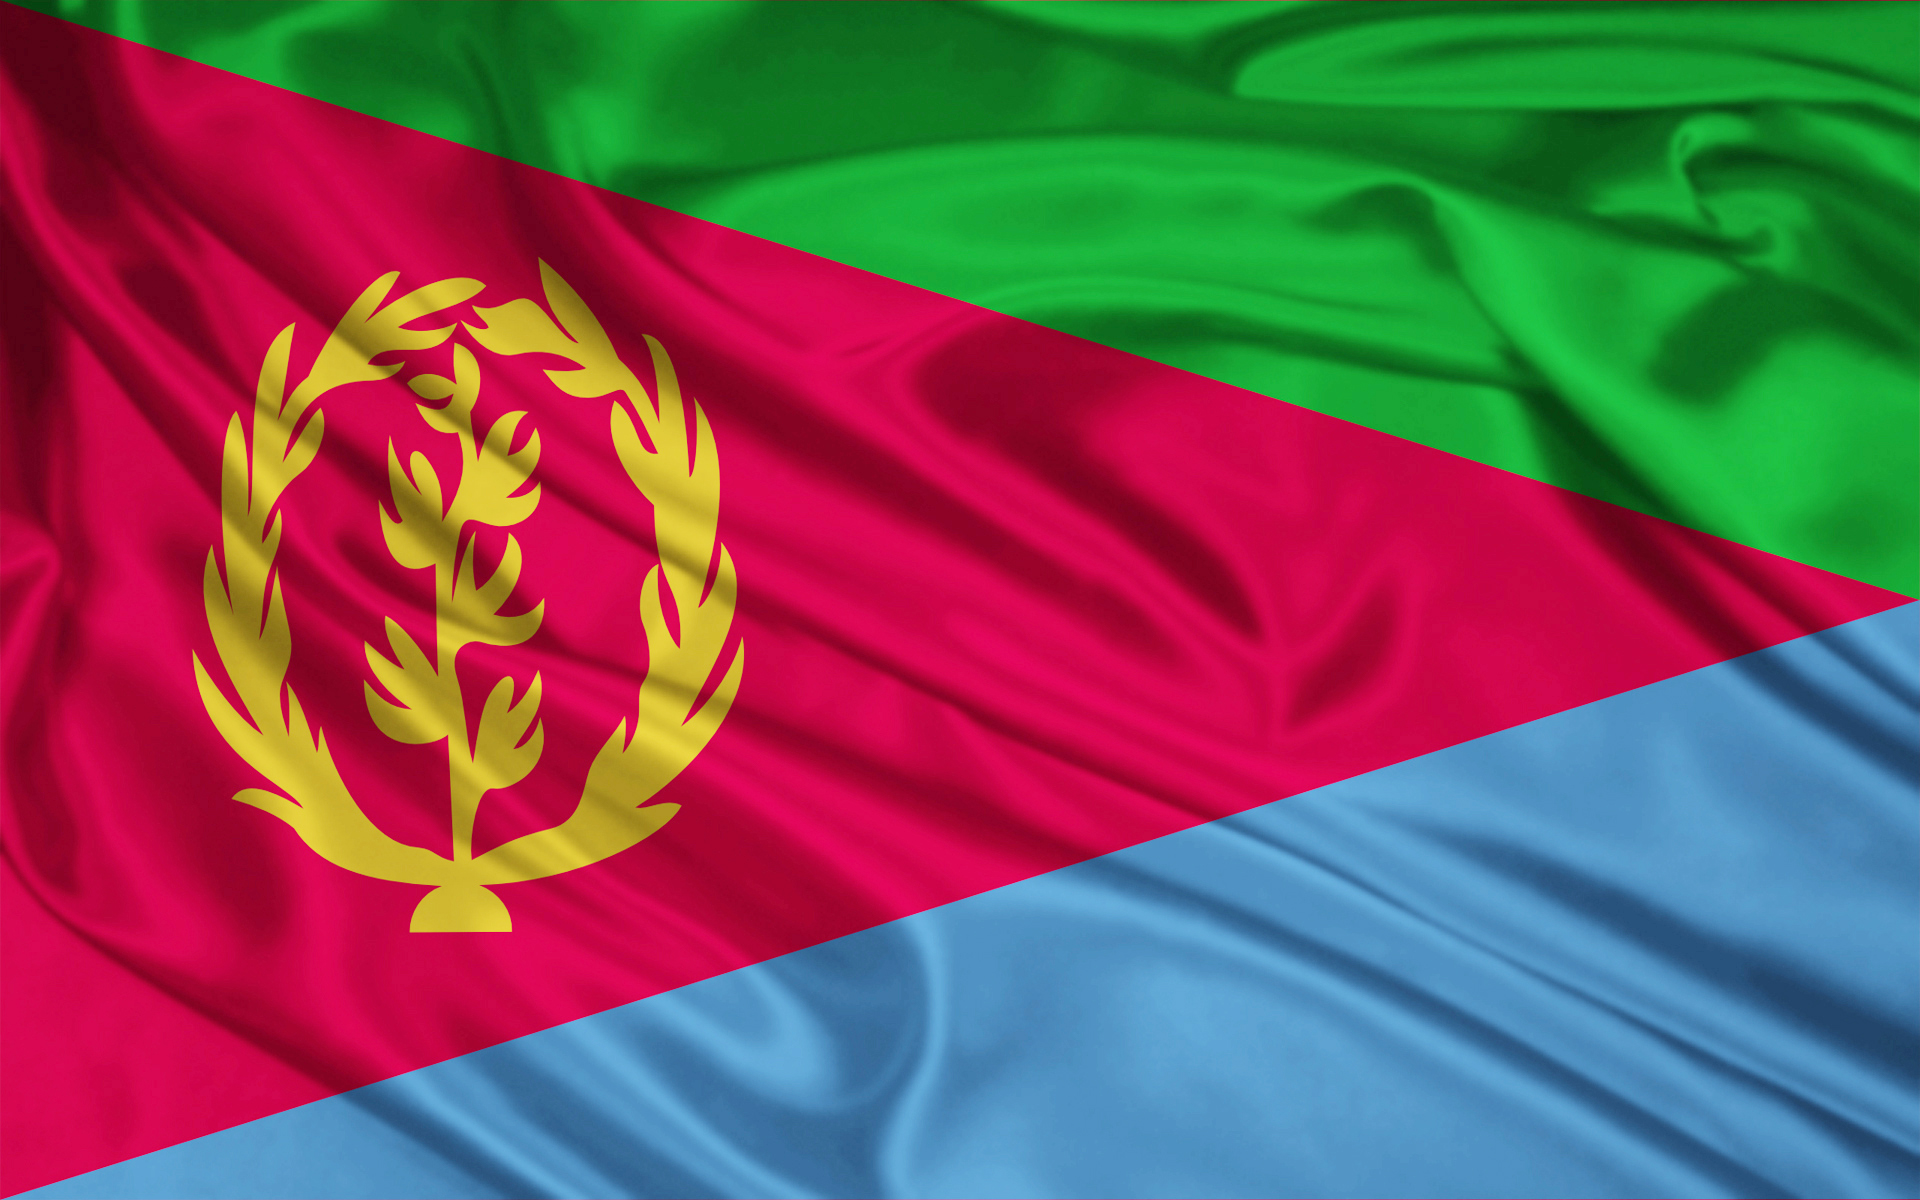 Eritrea flag and wallpaper